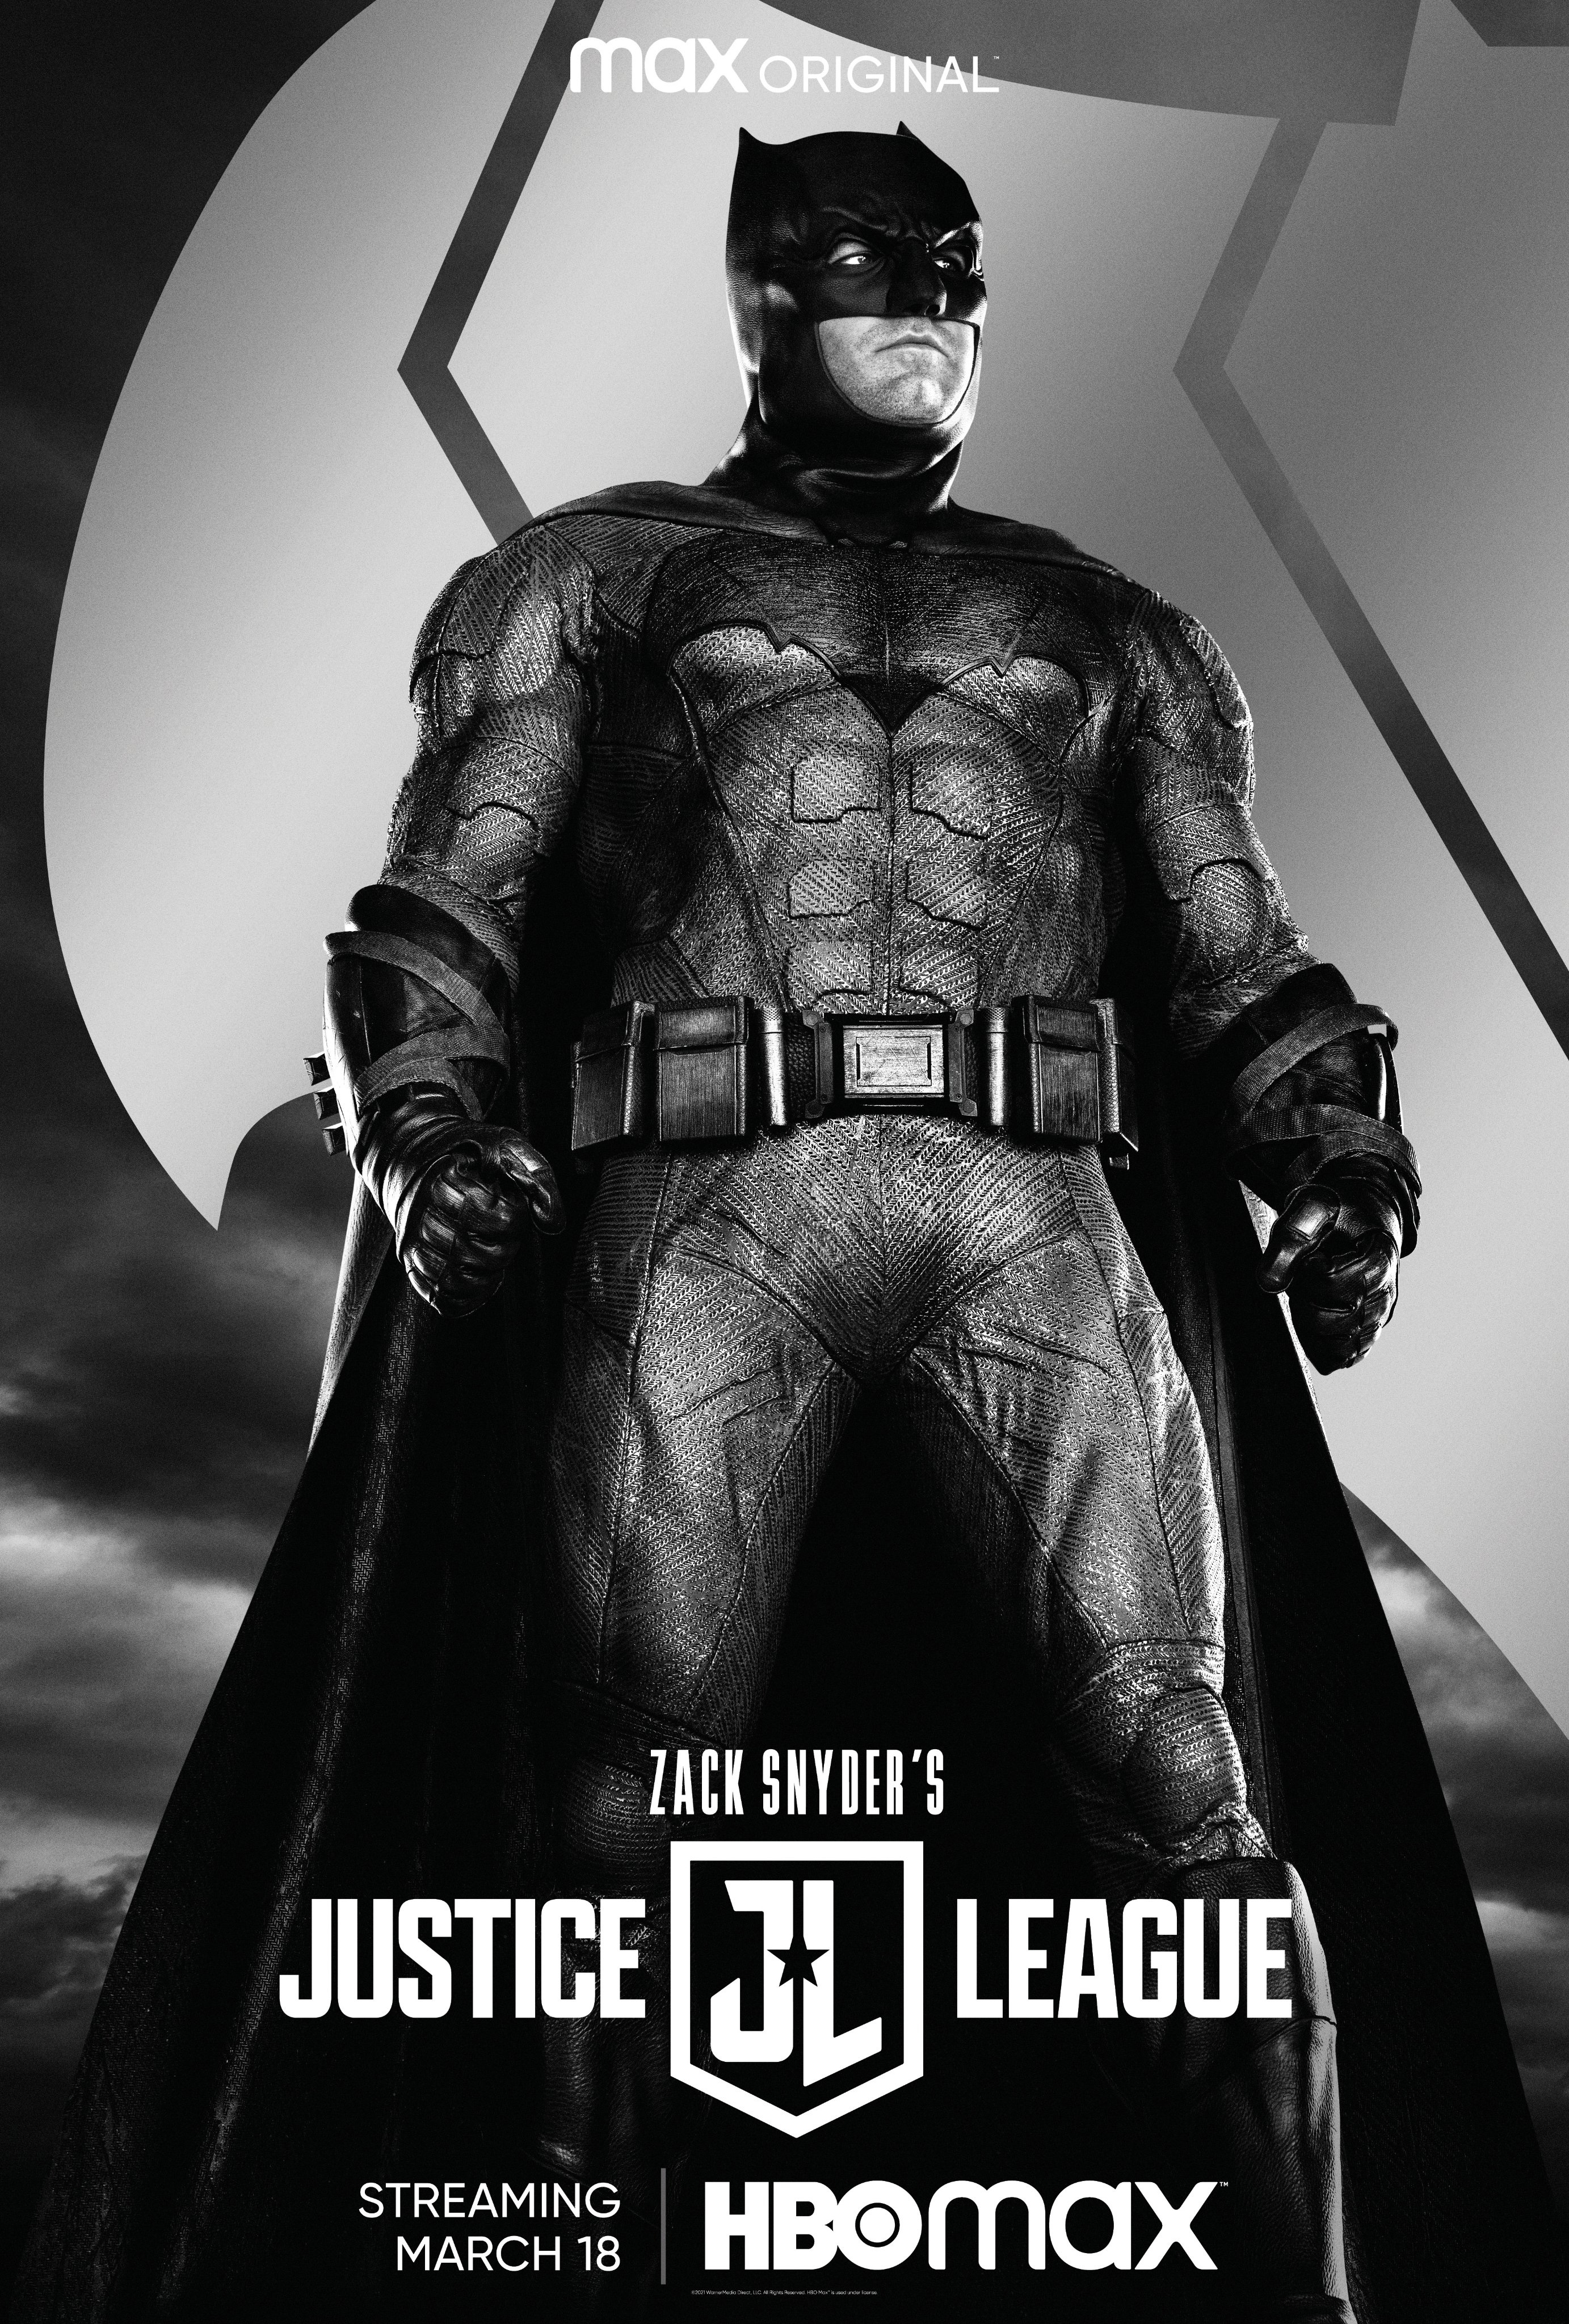 Zack Snyder's Justice League Batman Poster